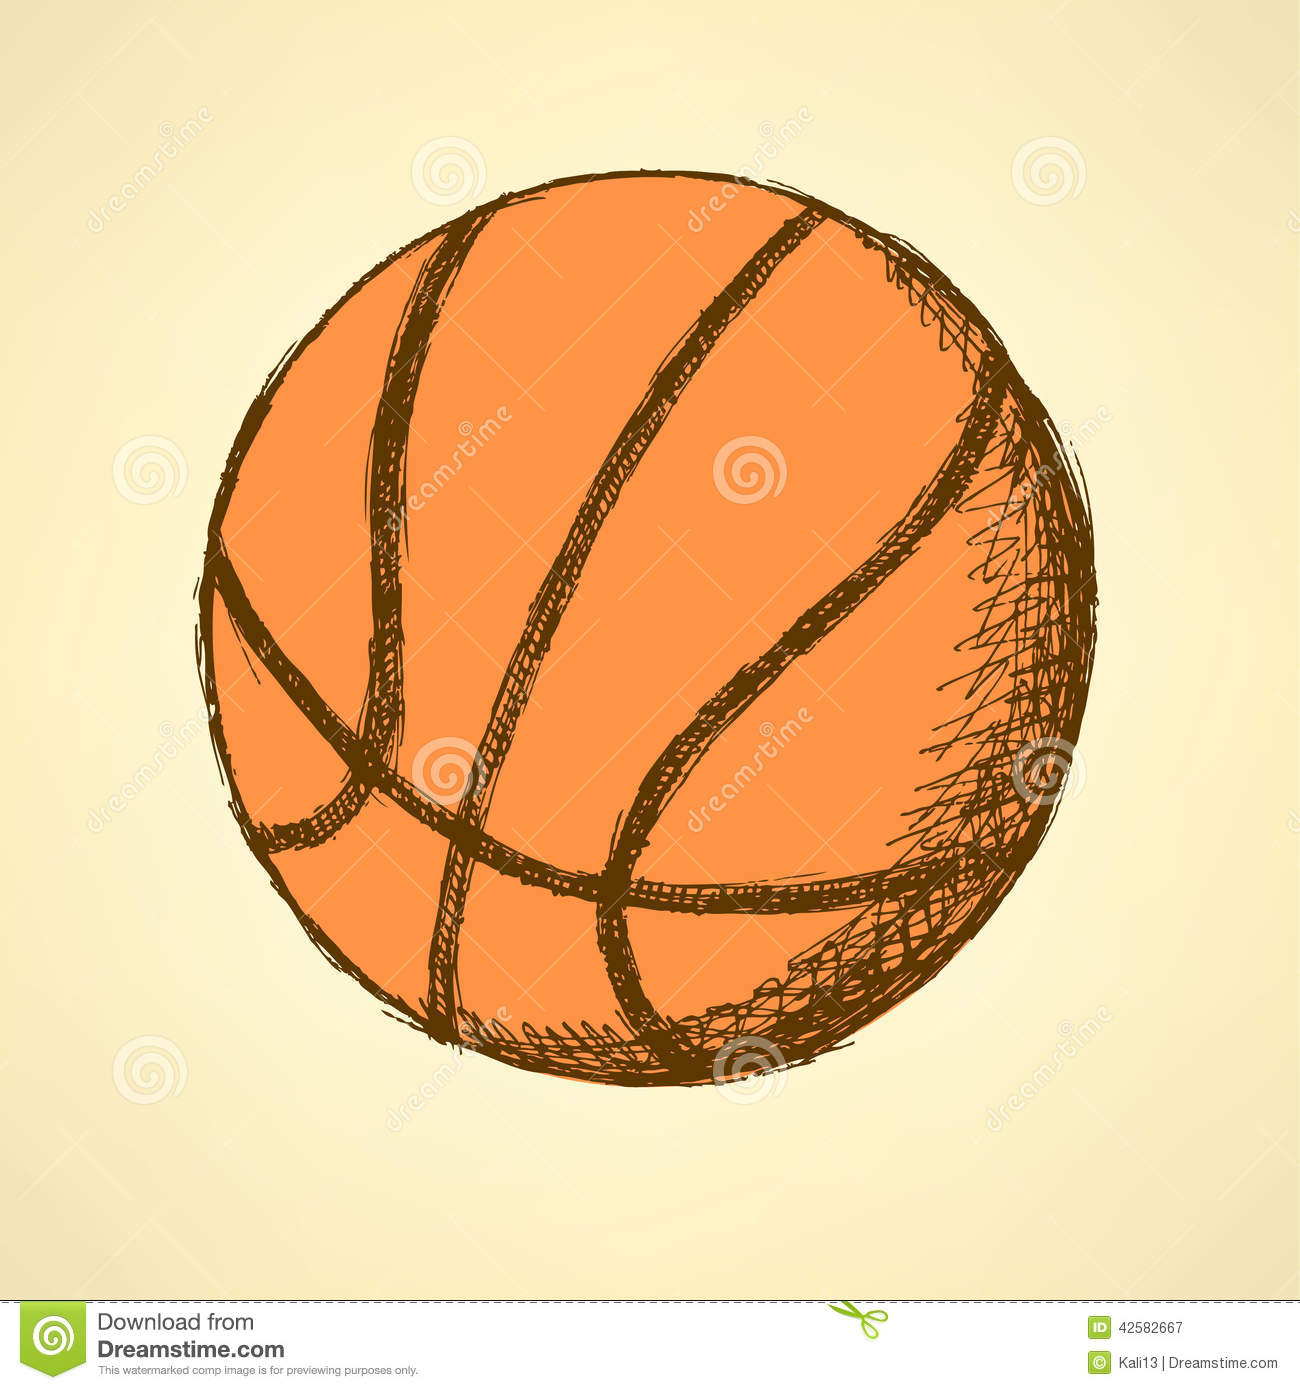 how to draw a basketball net and ball